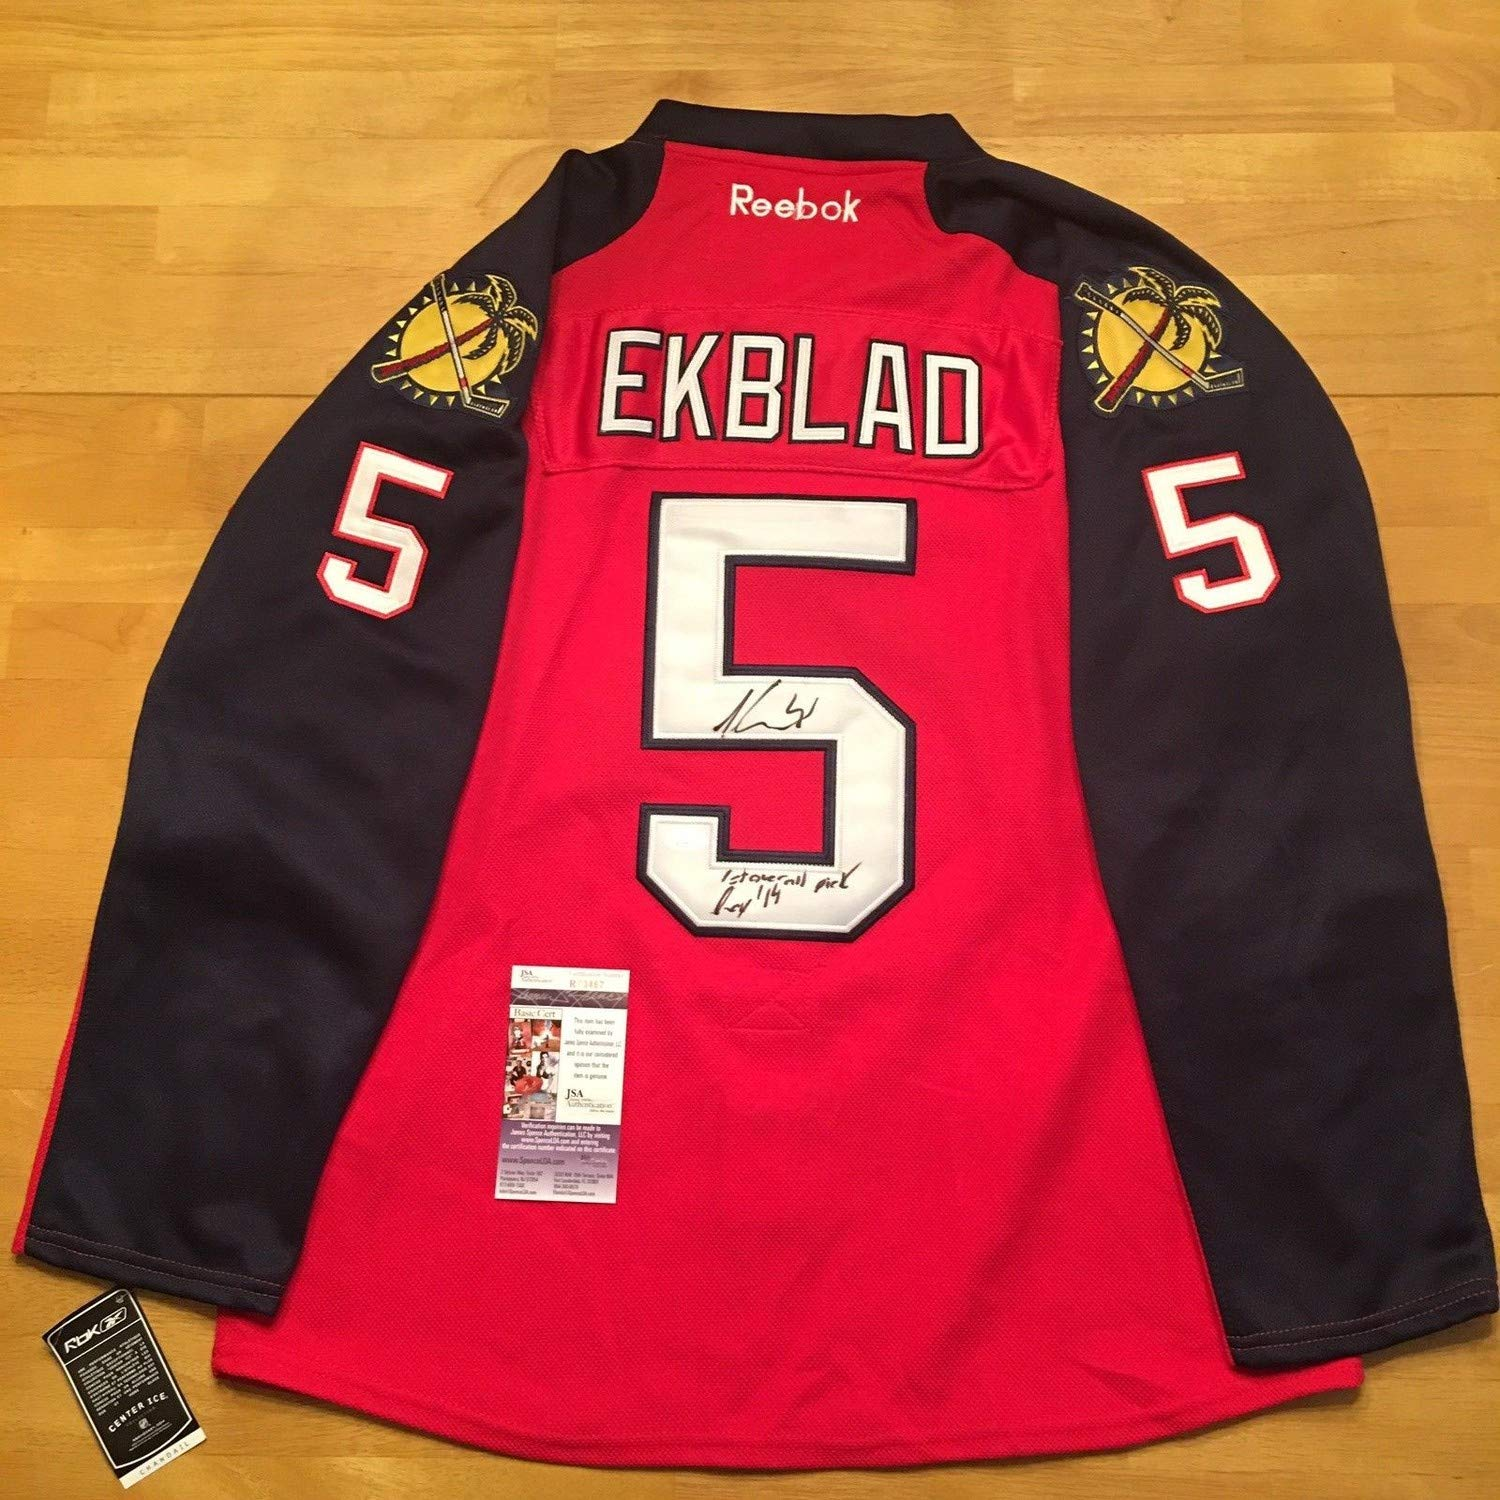 purchase cheap 69ac4 dad9e Aaron Ekblad Autographed Signed Florida Panthers Reebok ...